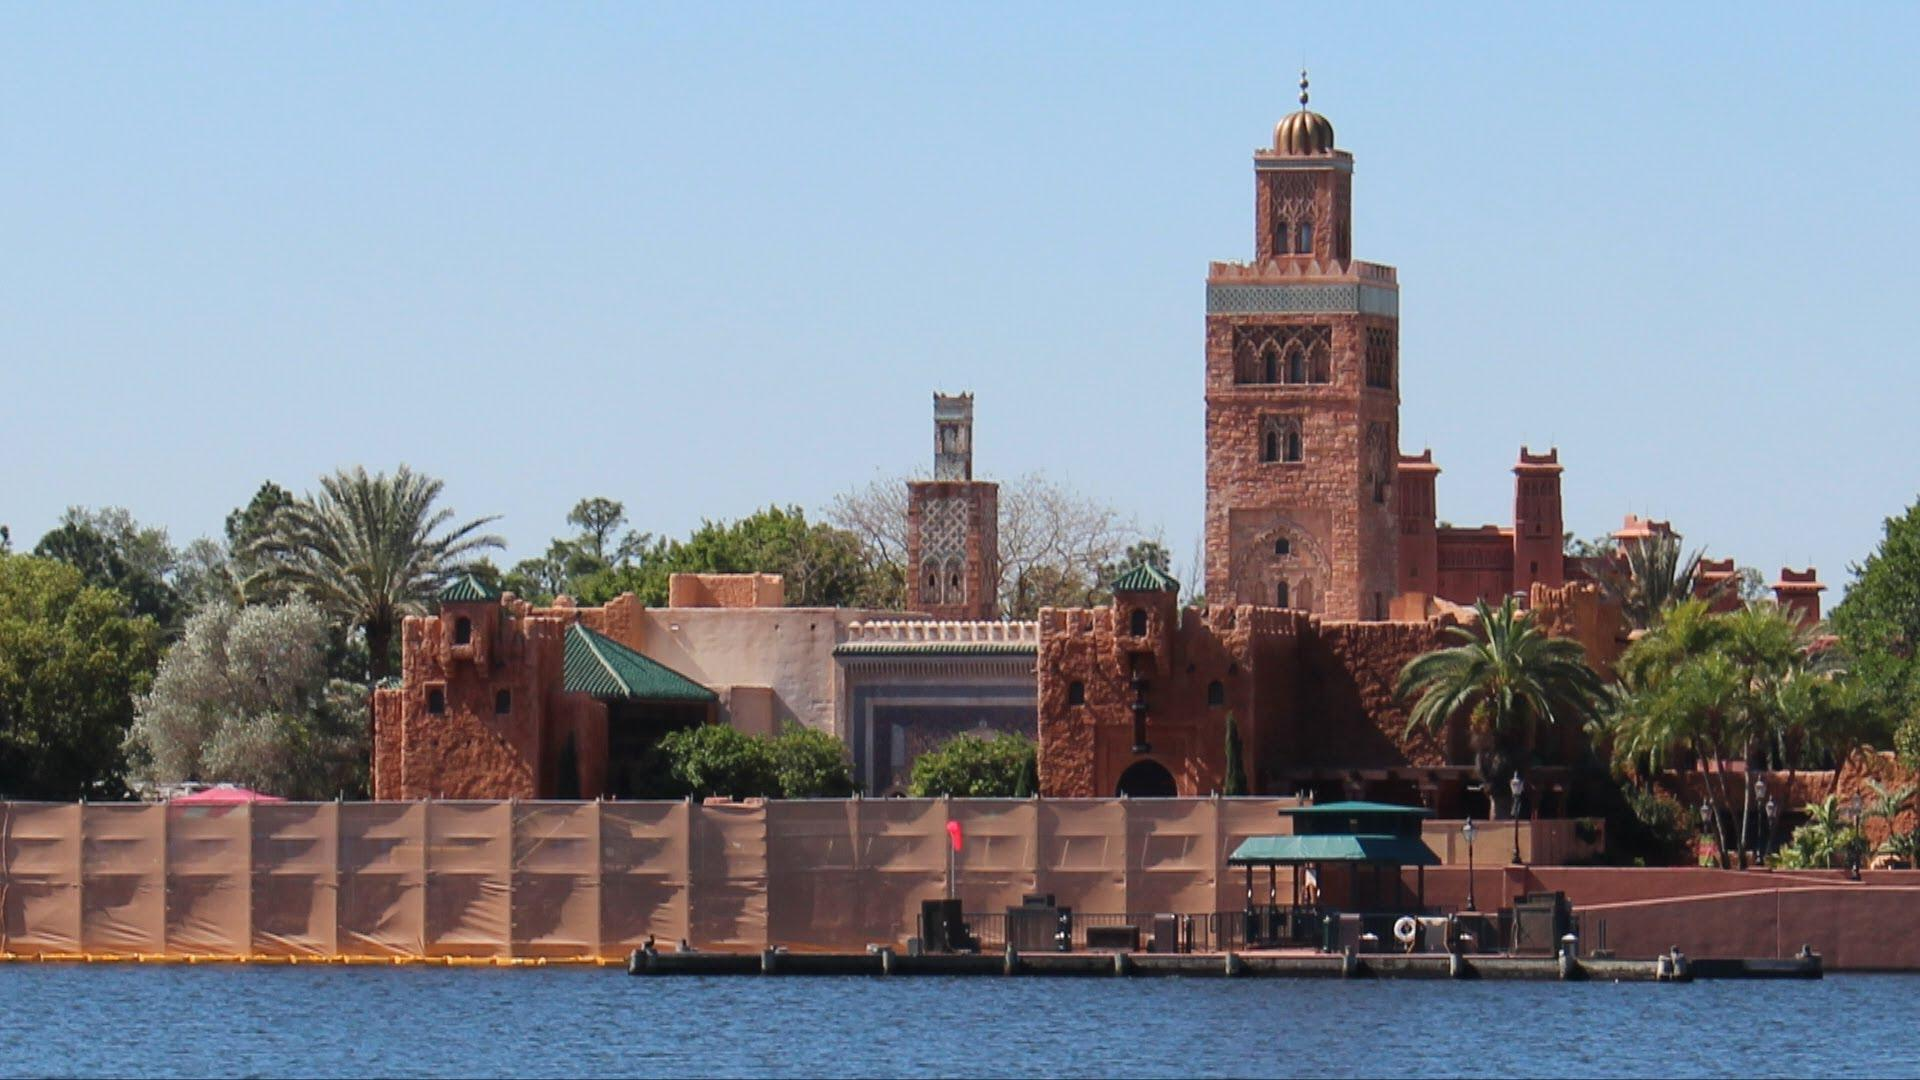 Morocco Pavilion Orlando Tickets Hotels Packages